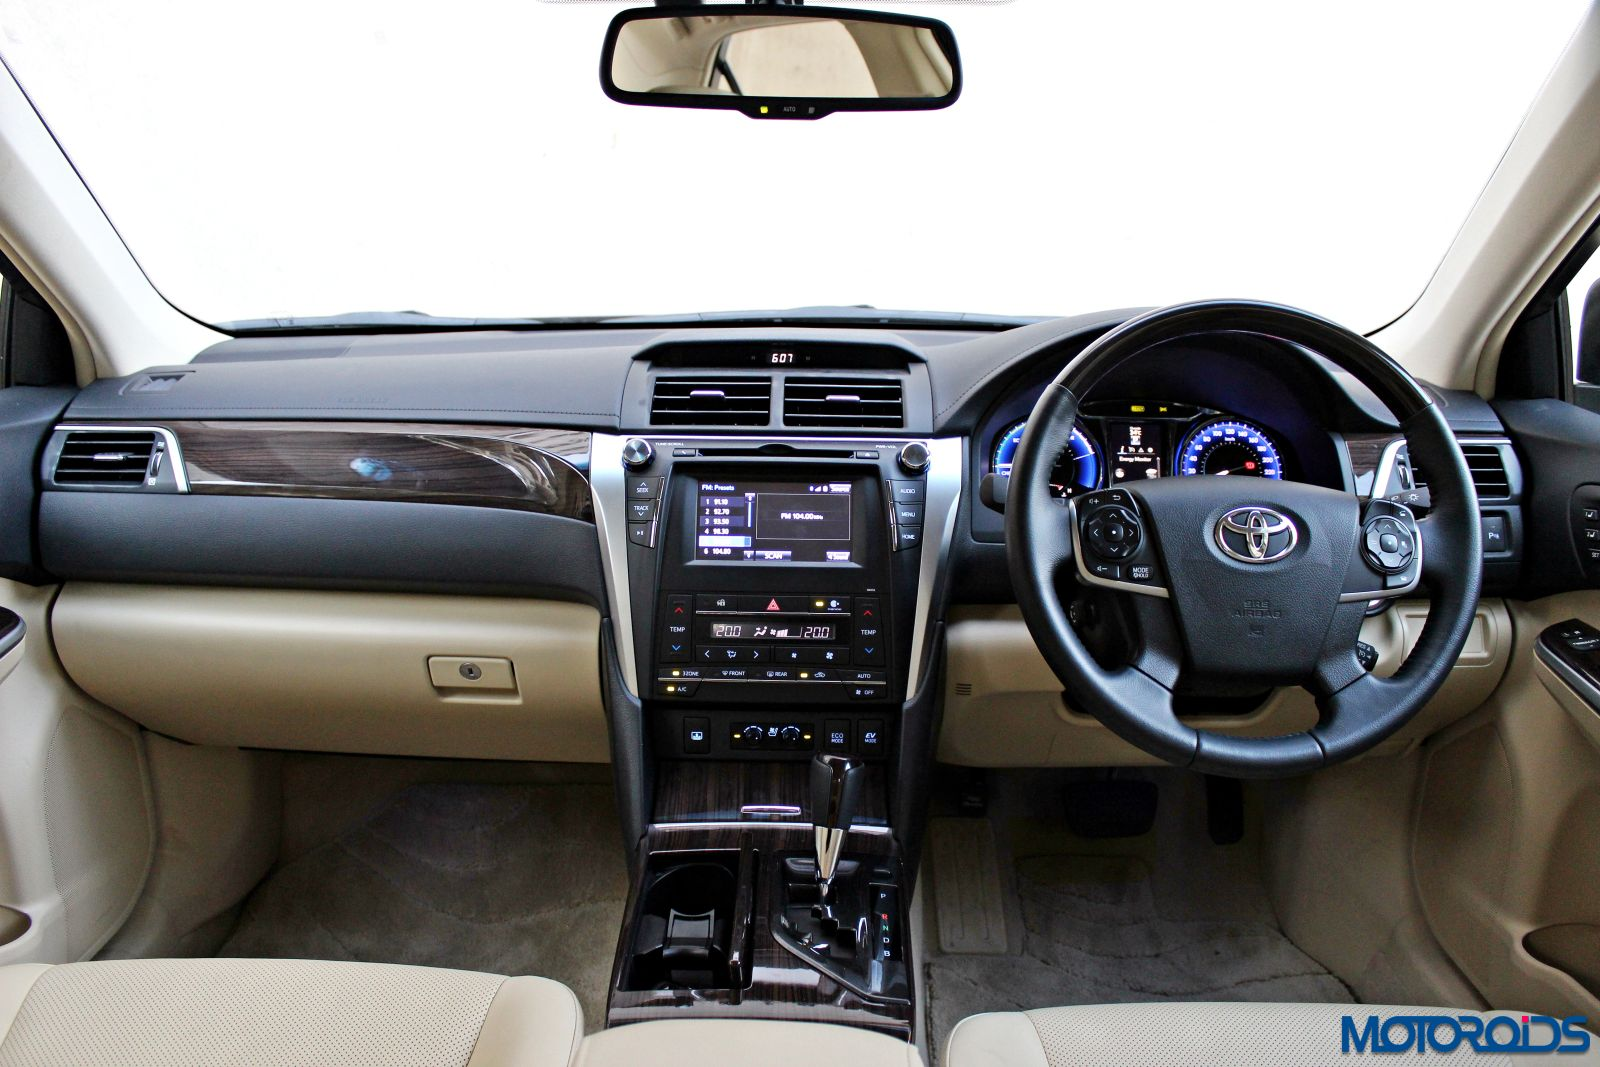 2015 Toyota Camry Dash Symbols Free Download Lexus Dashboard Warning Lights And What They Mean